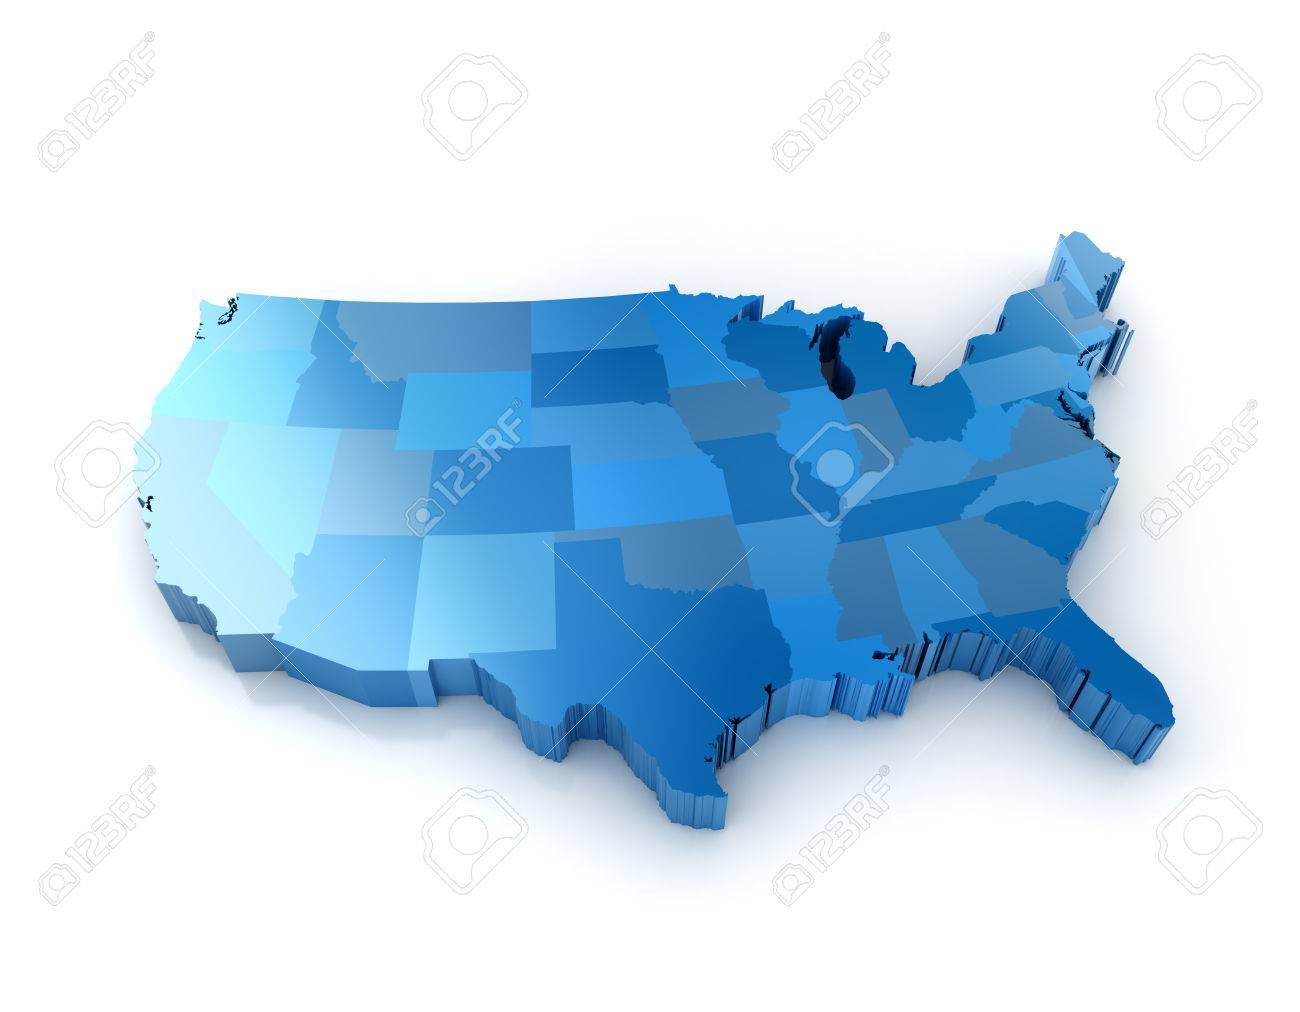 Map Usa D Stock Photos Images Royalty Free Map Usa D Images And - 3d map usa states